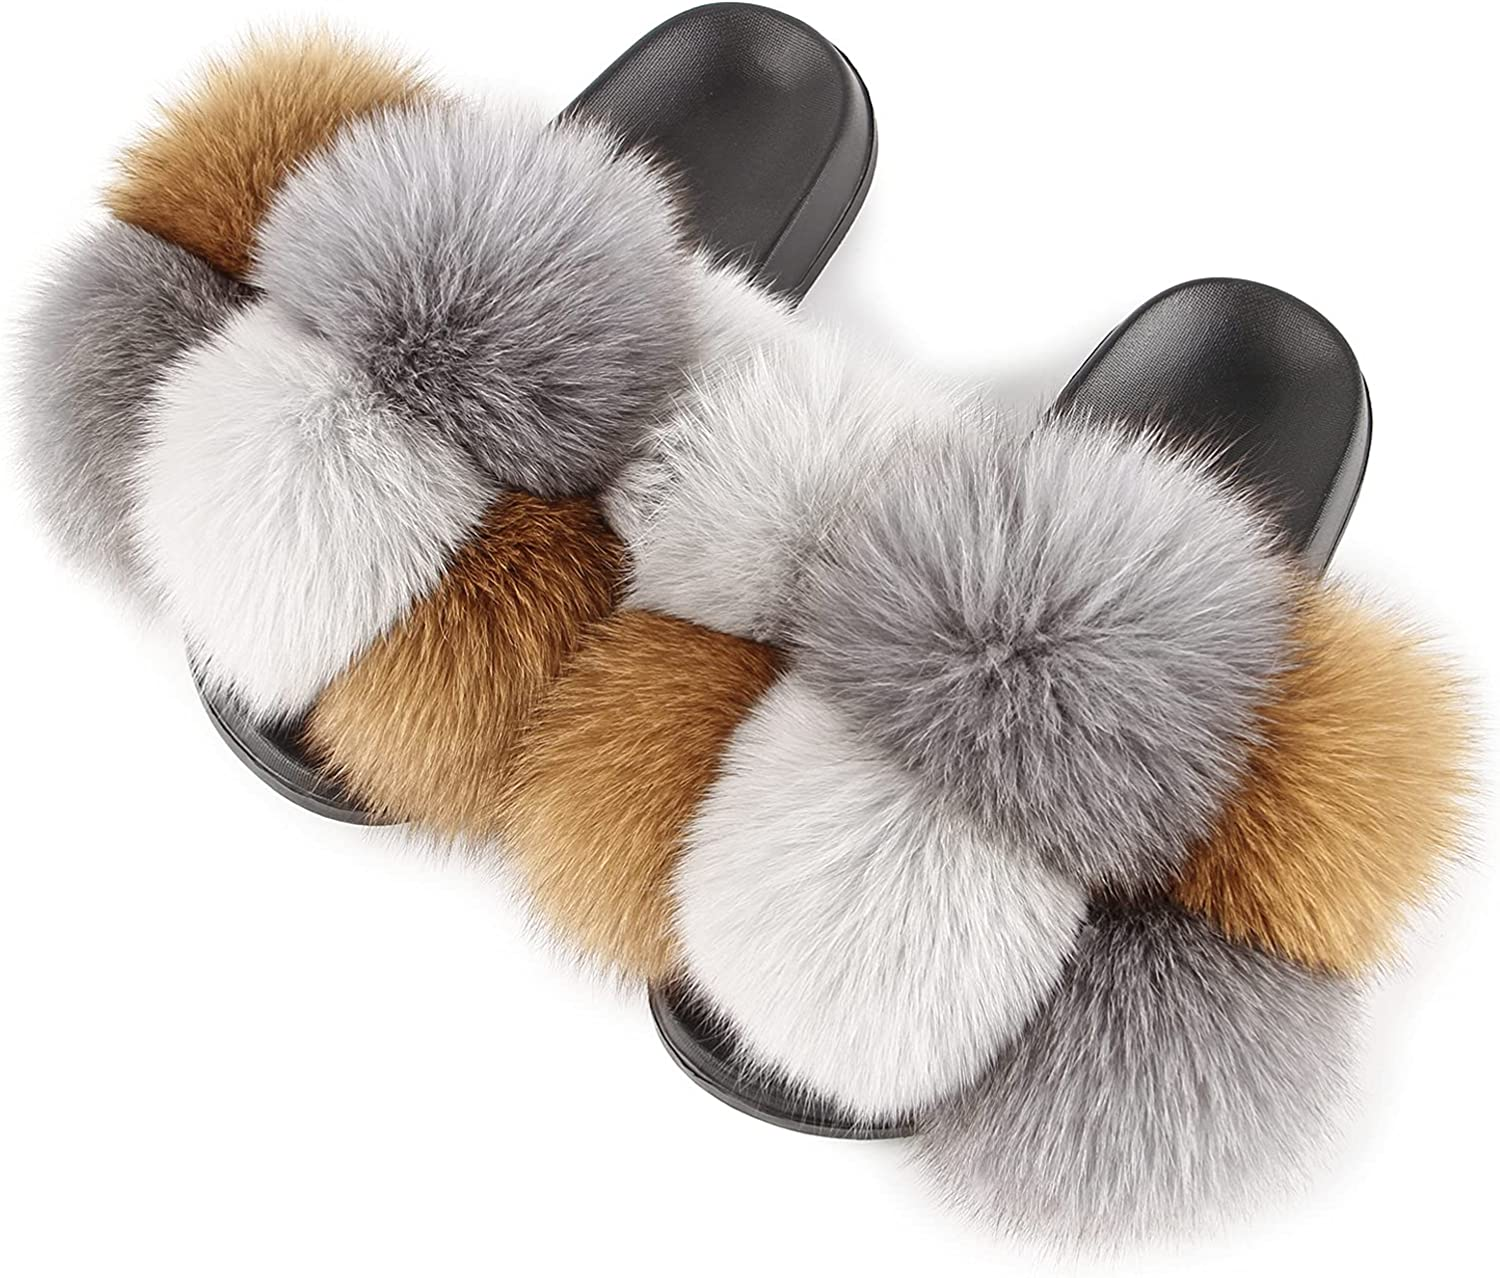 Women's Max 74% OFF Real Fox Challenge the lowest price Furry Fur Cute Open-Toe In Slides Sandals